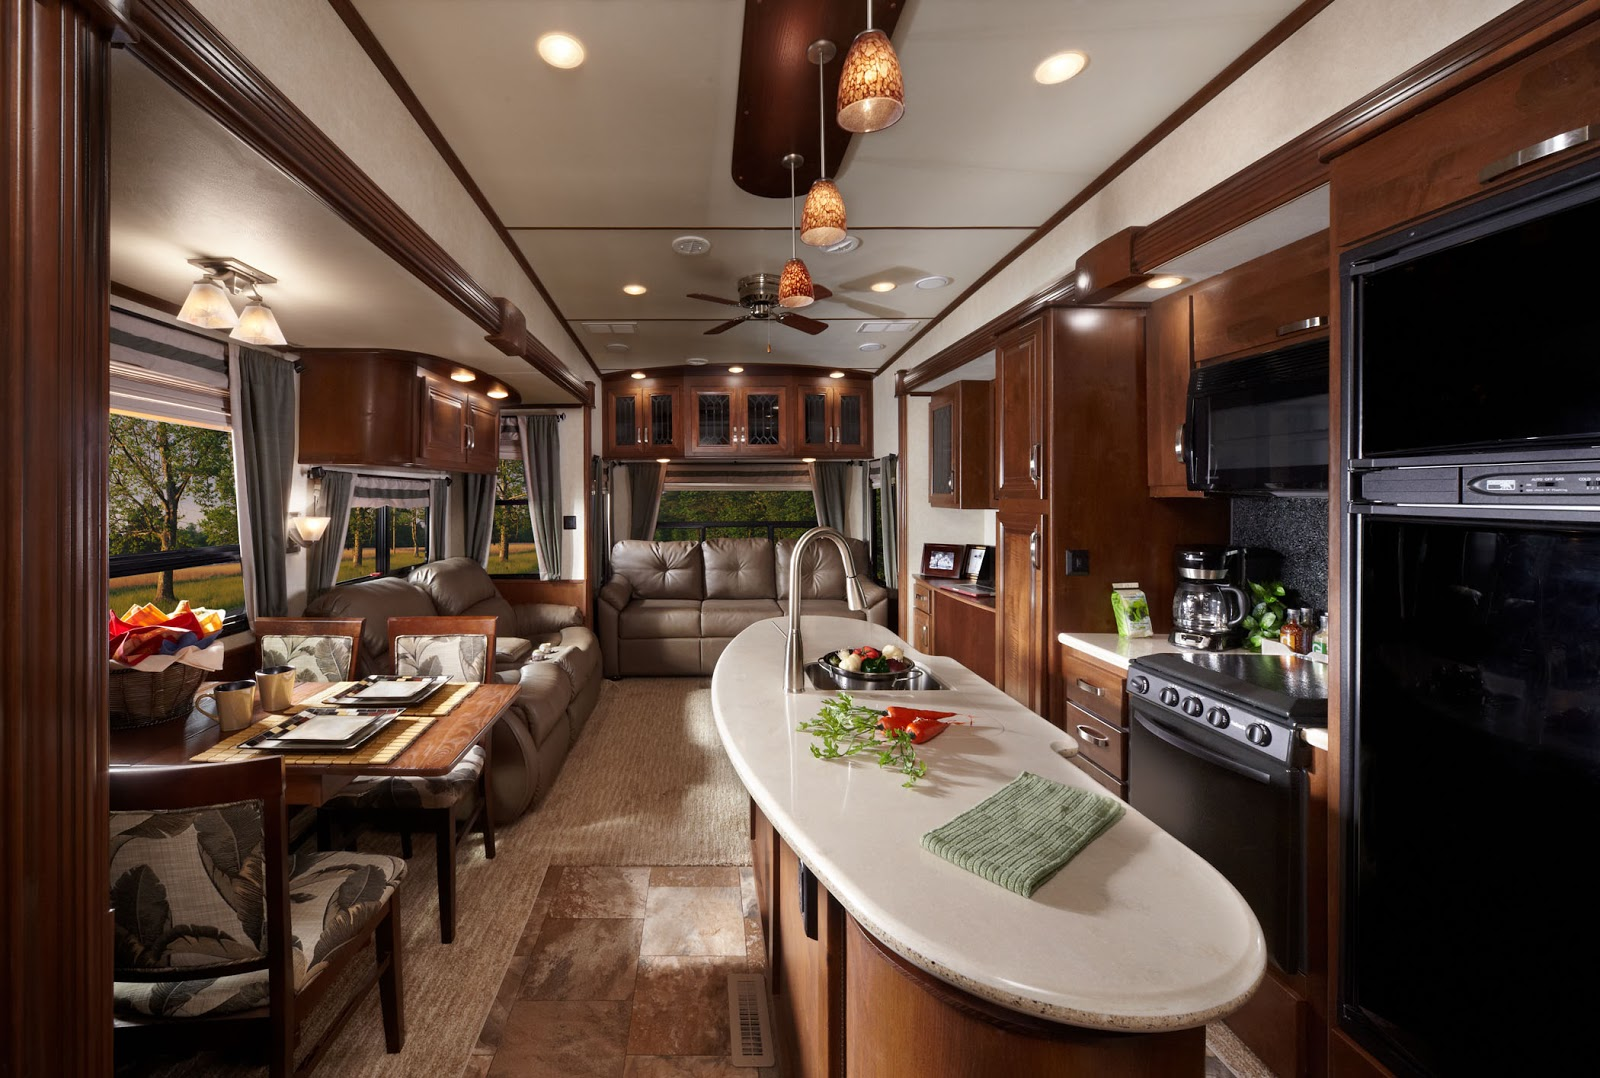 Rushmore Luxury 5th Wheel Trailers Pictures